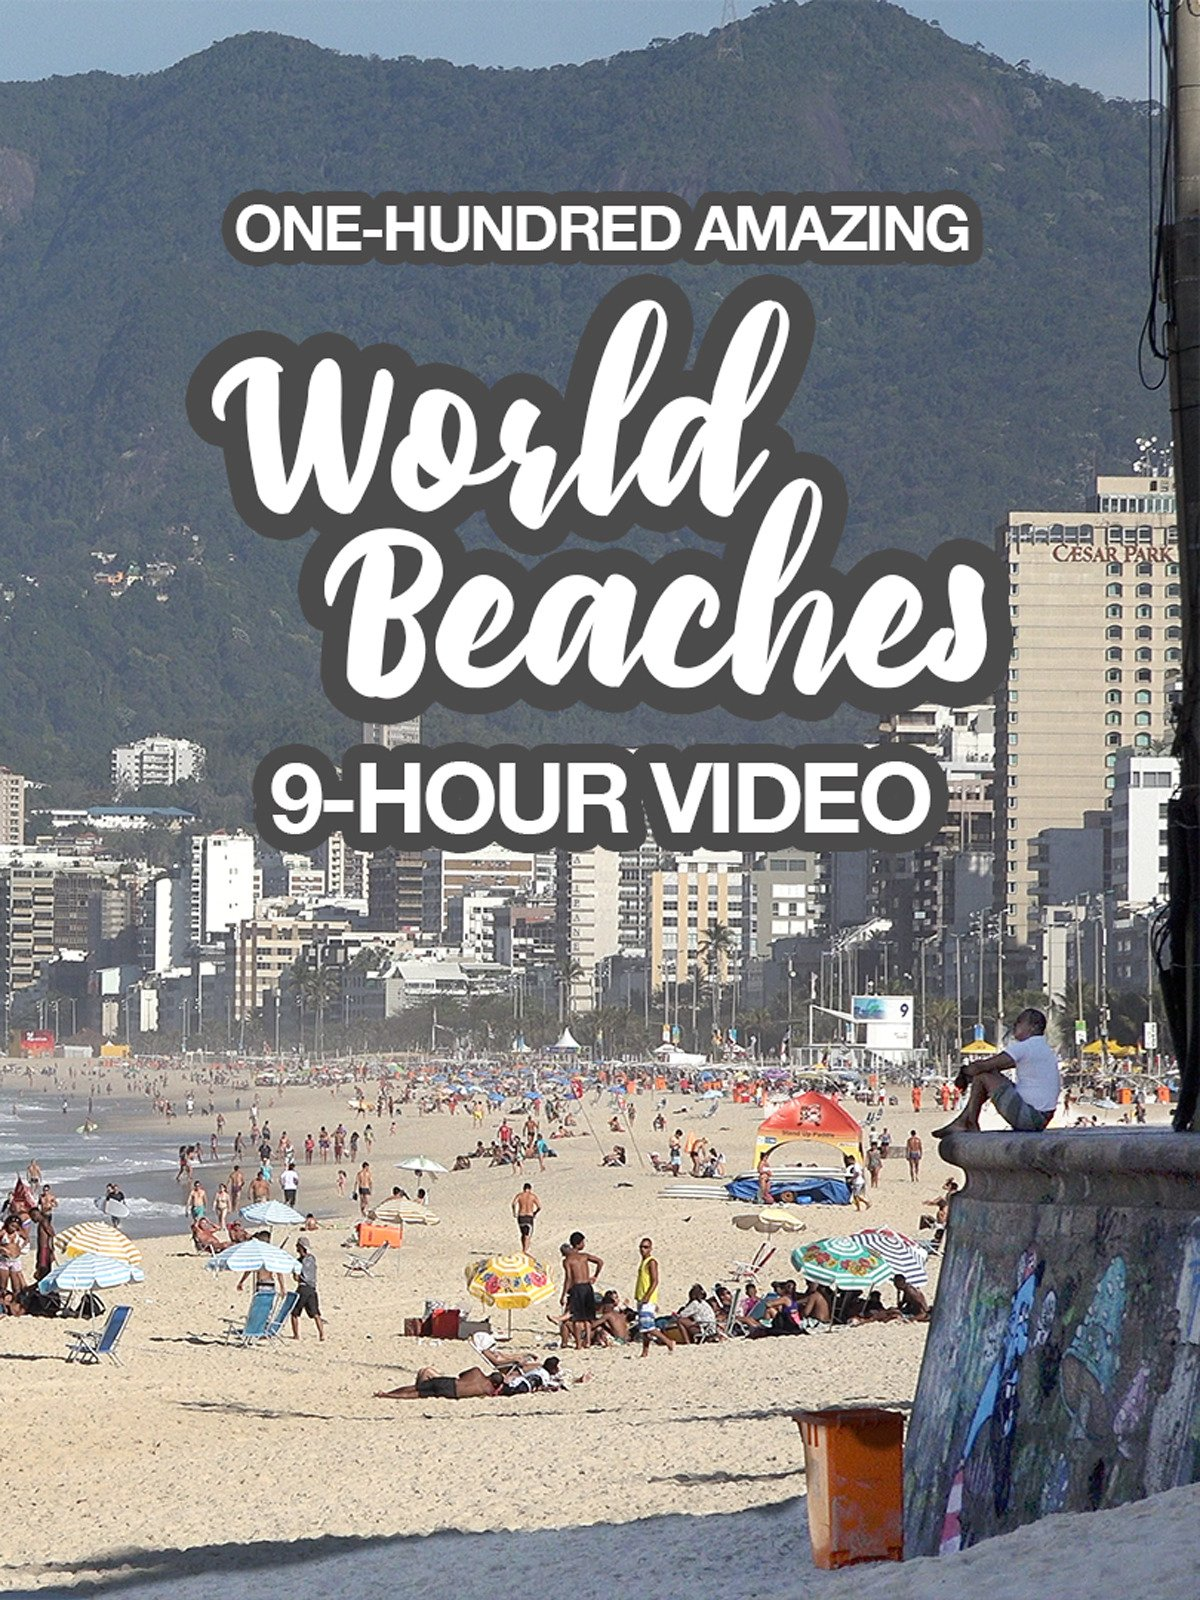 One-hundred Amazing World Beaches, 9-hour video